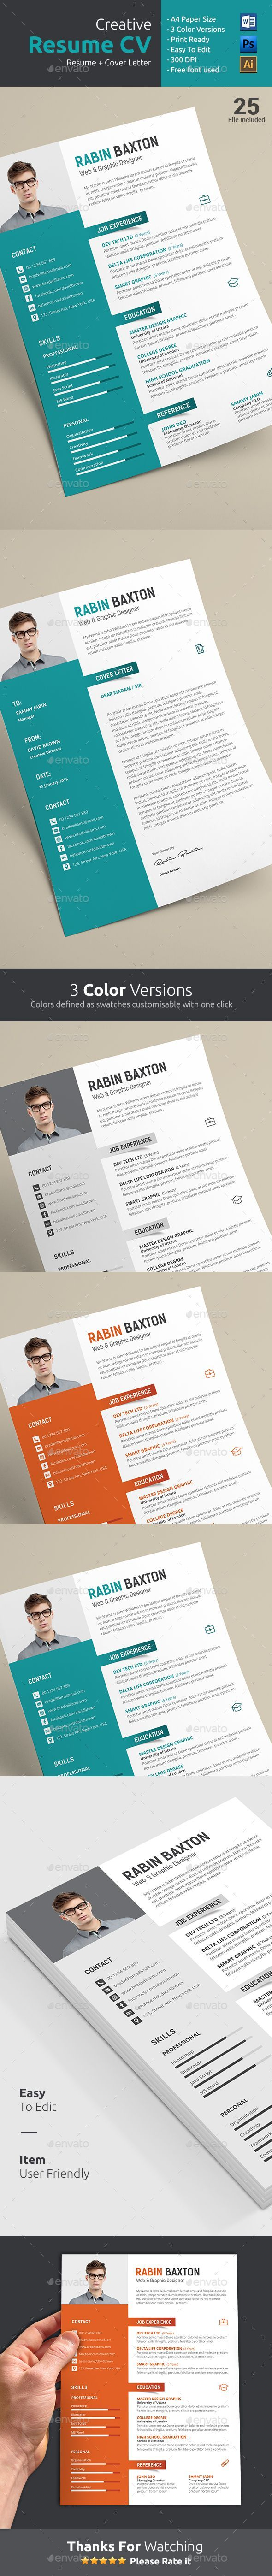 #Resume #Template PSD, AI